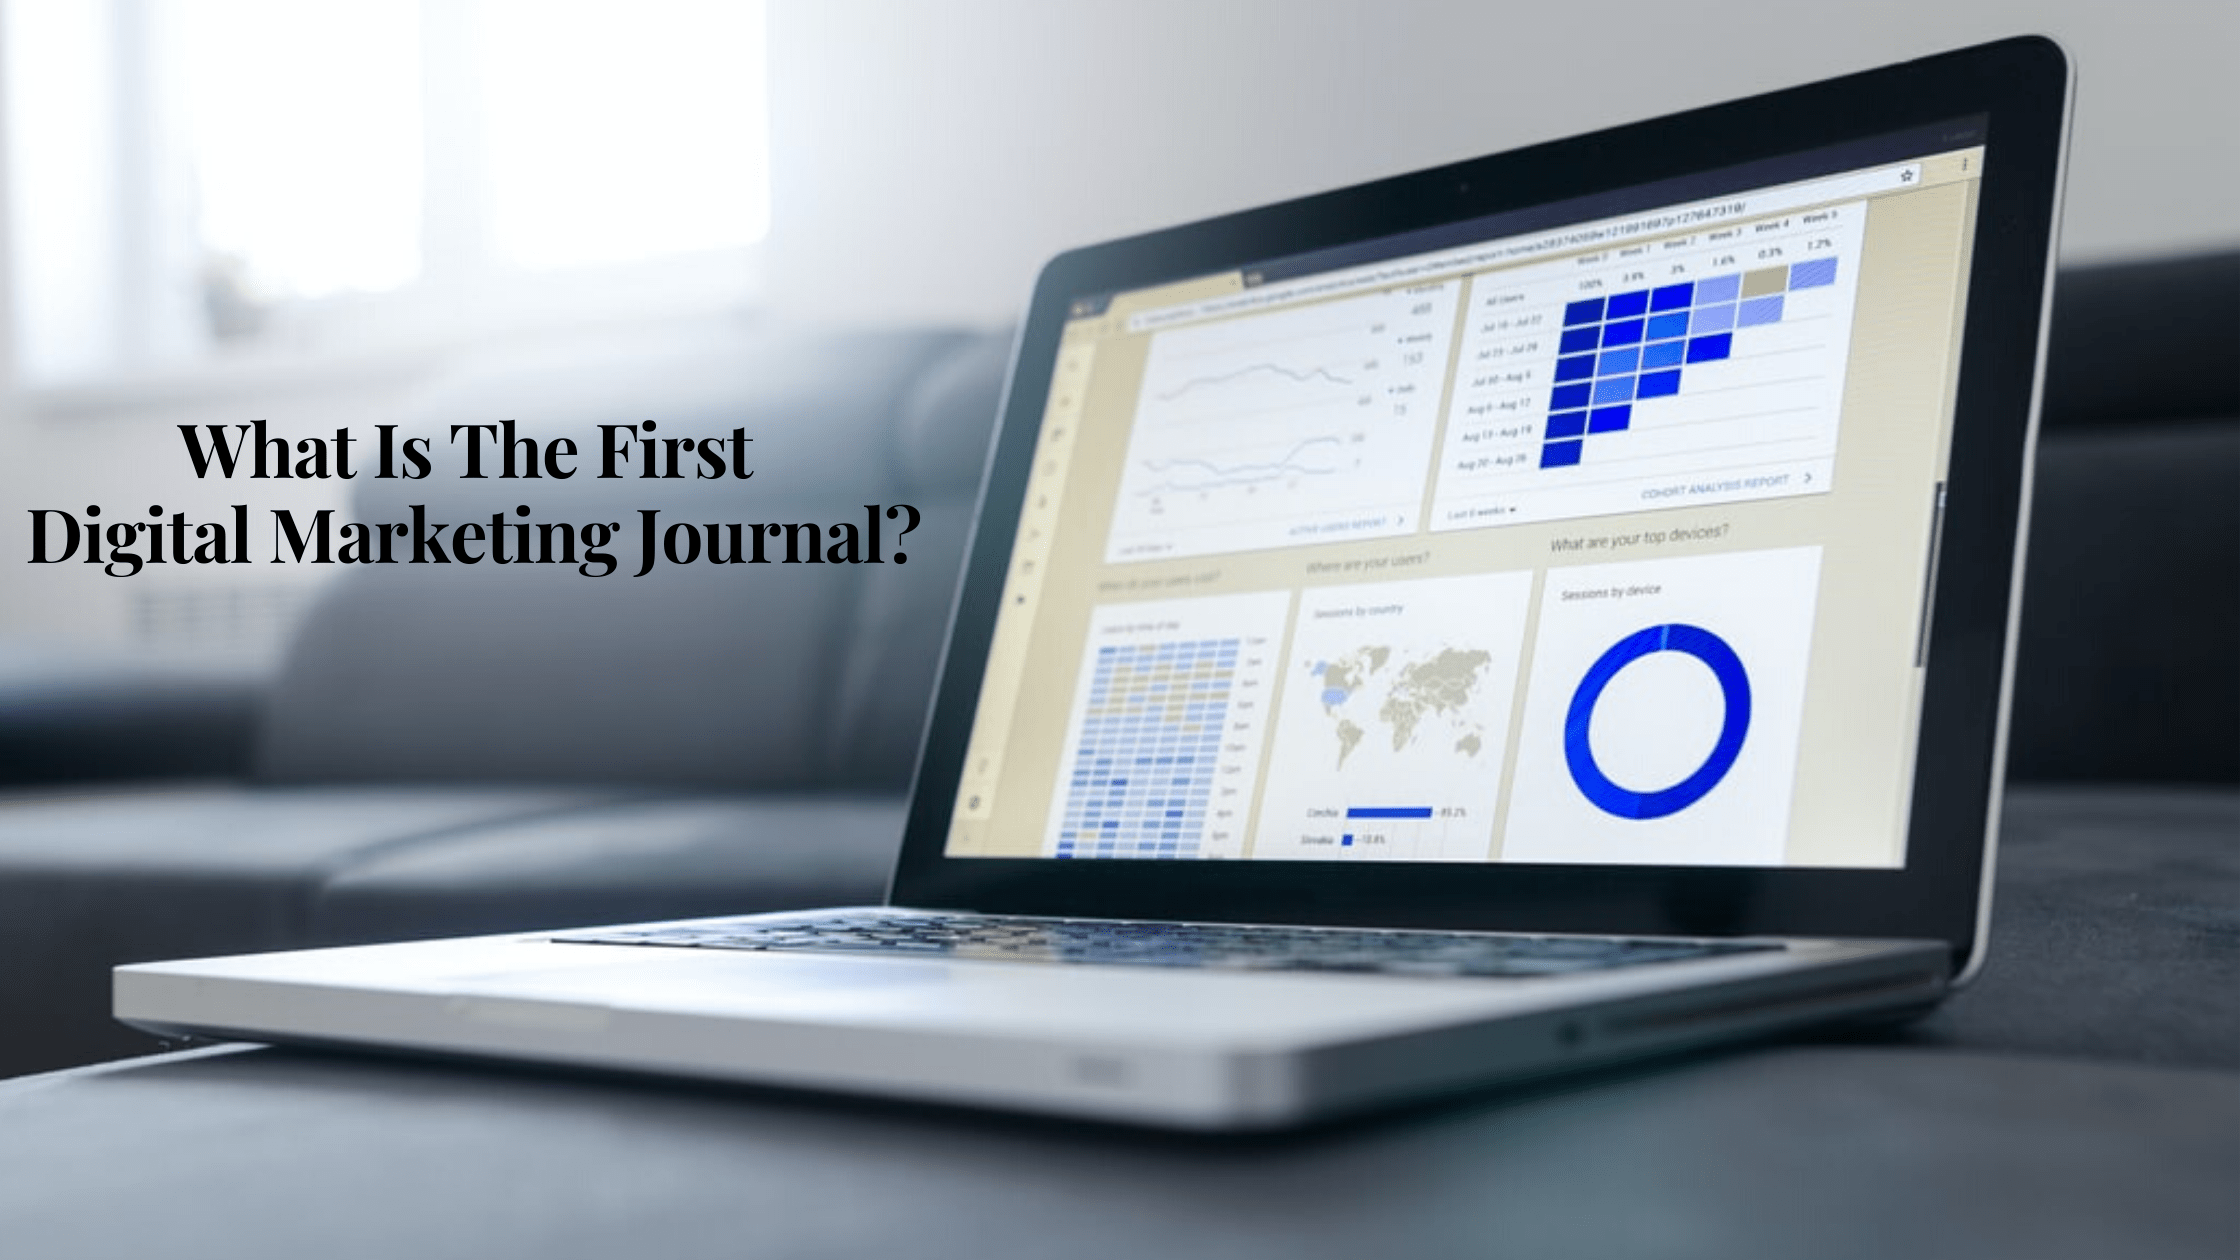 What Is The First Digital Marketing Journal